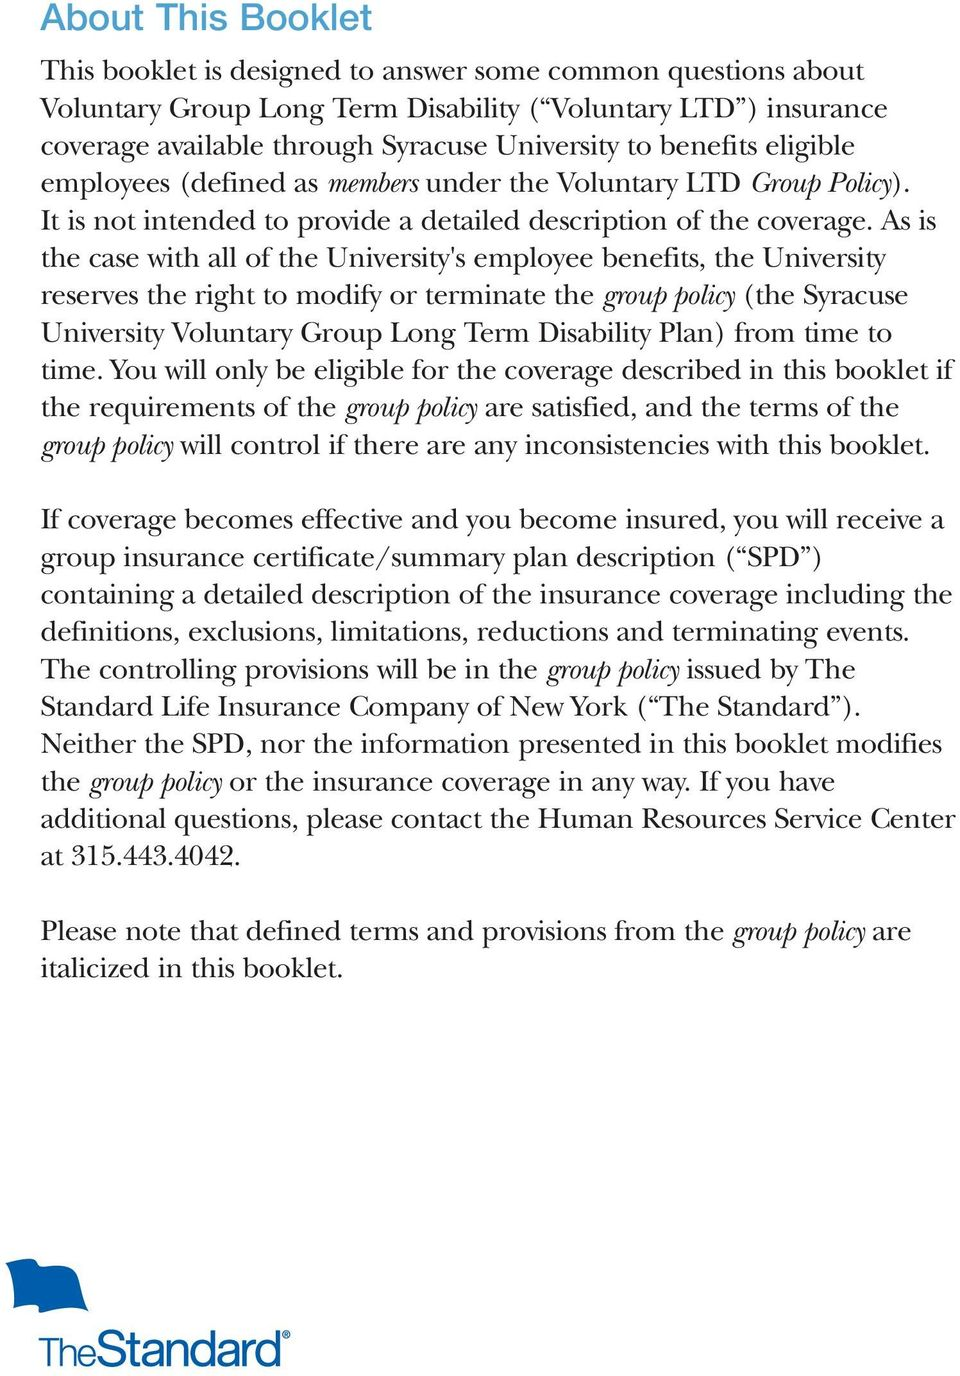 As is the case with all of the University's employee benefits, the University reserves the right to modify or terminate the group policy (the Syracuse University Voluntary Group Long Term Disability